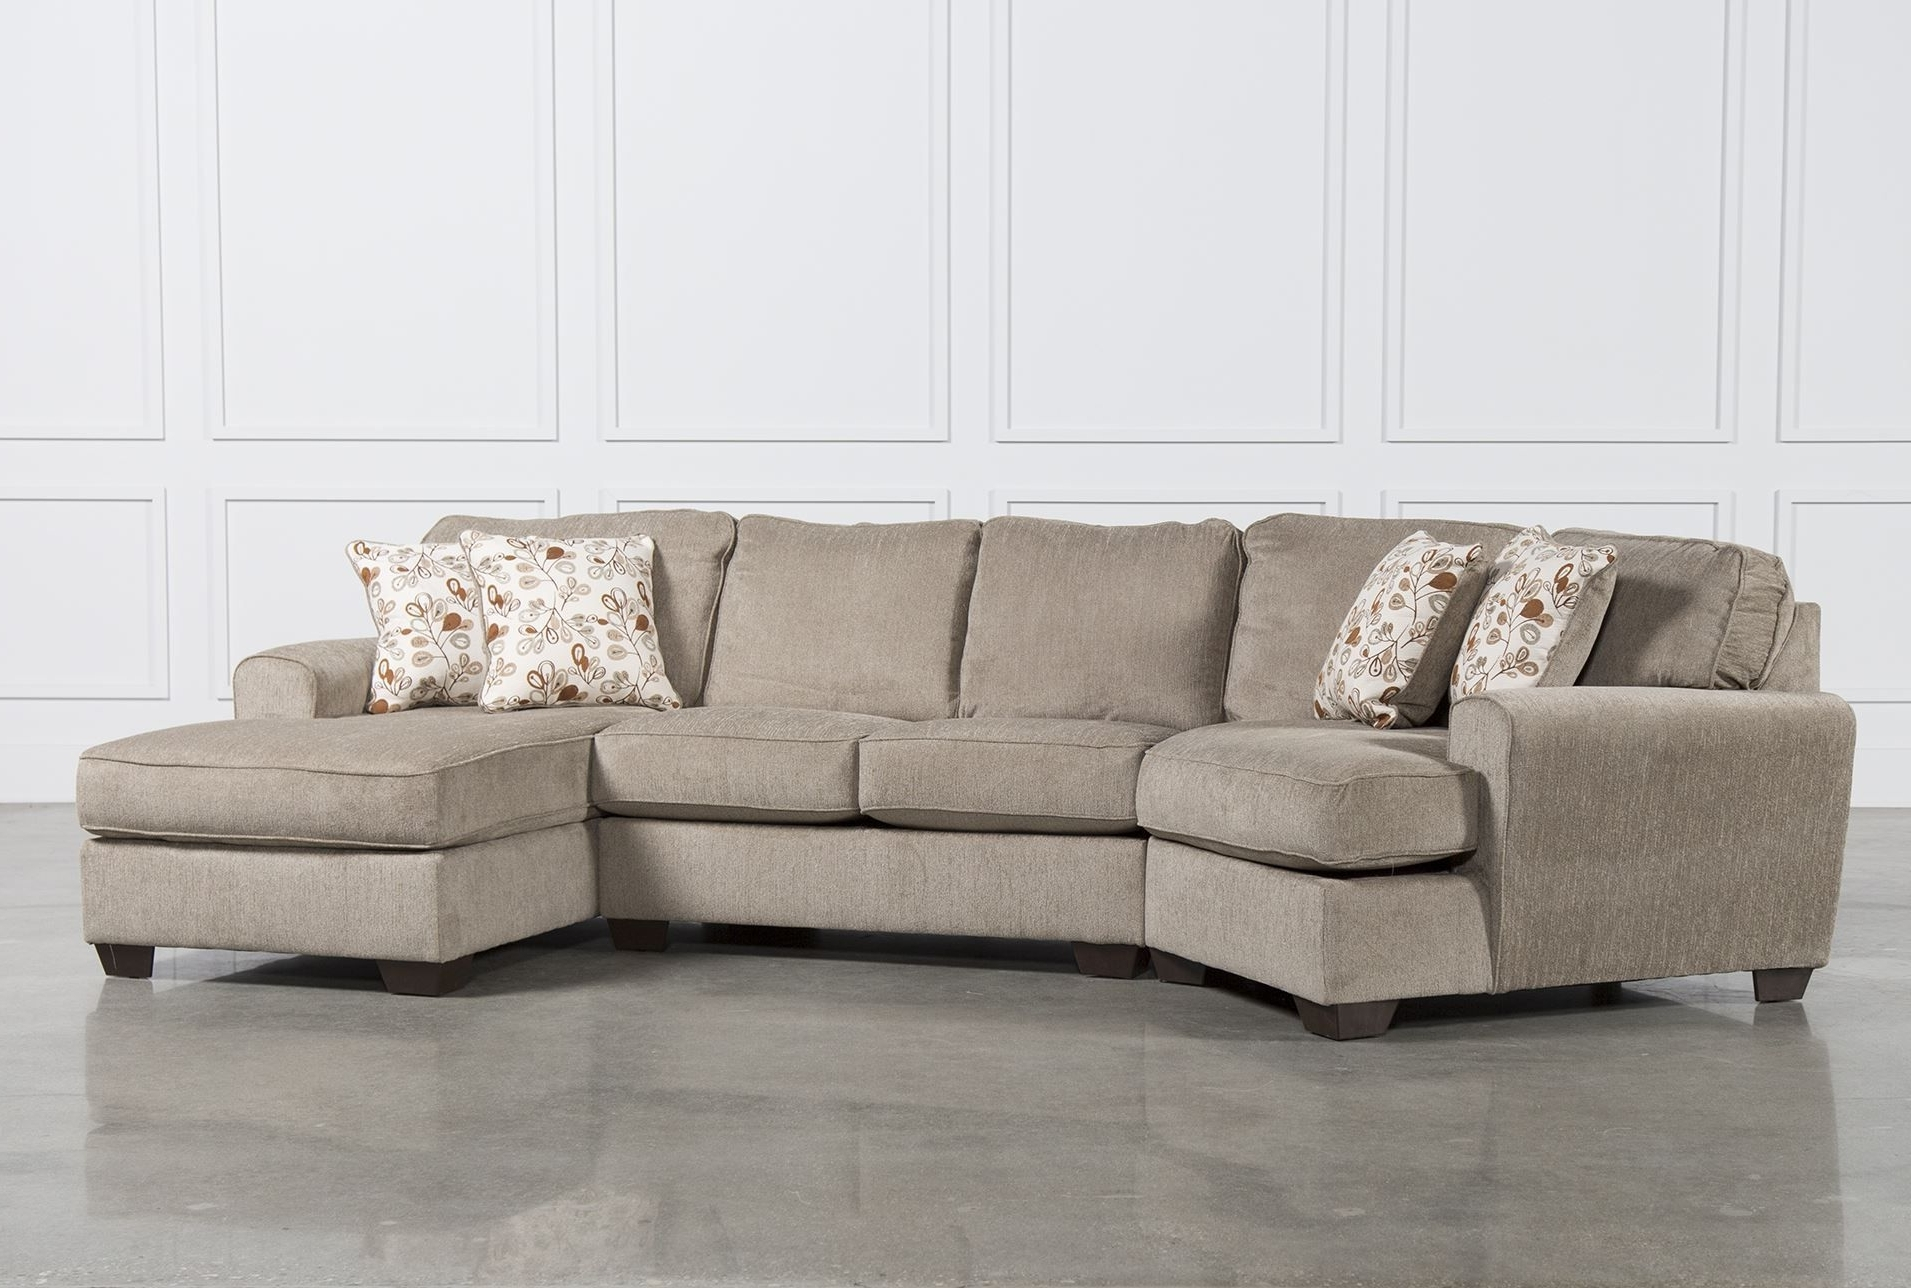 Mon Inside Fashionable 3 Piece Sectional Sofas With Chaise (View 8 of 15)